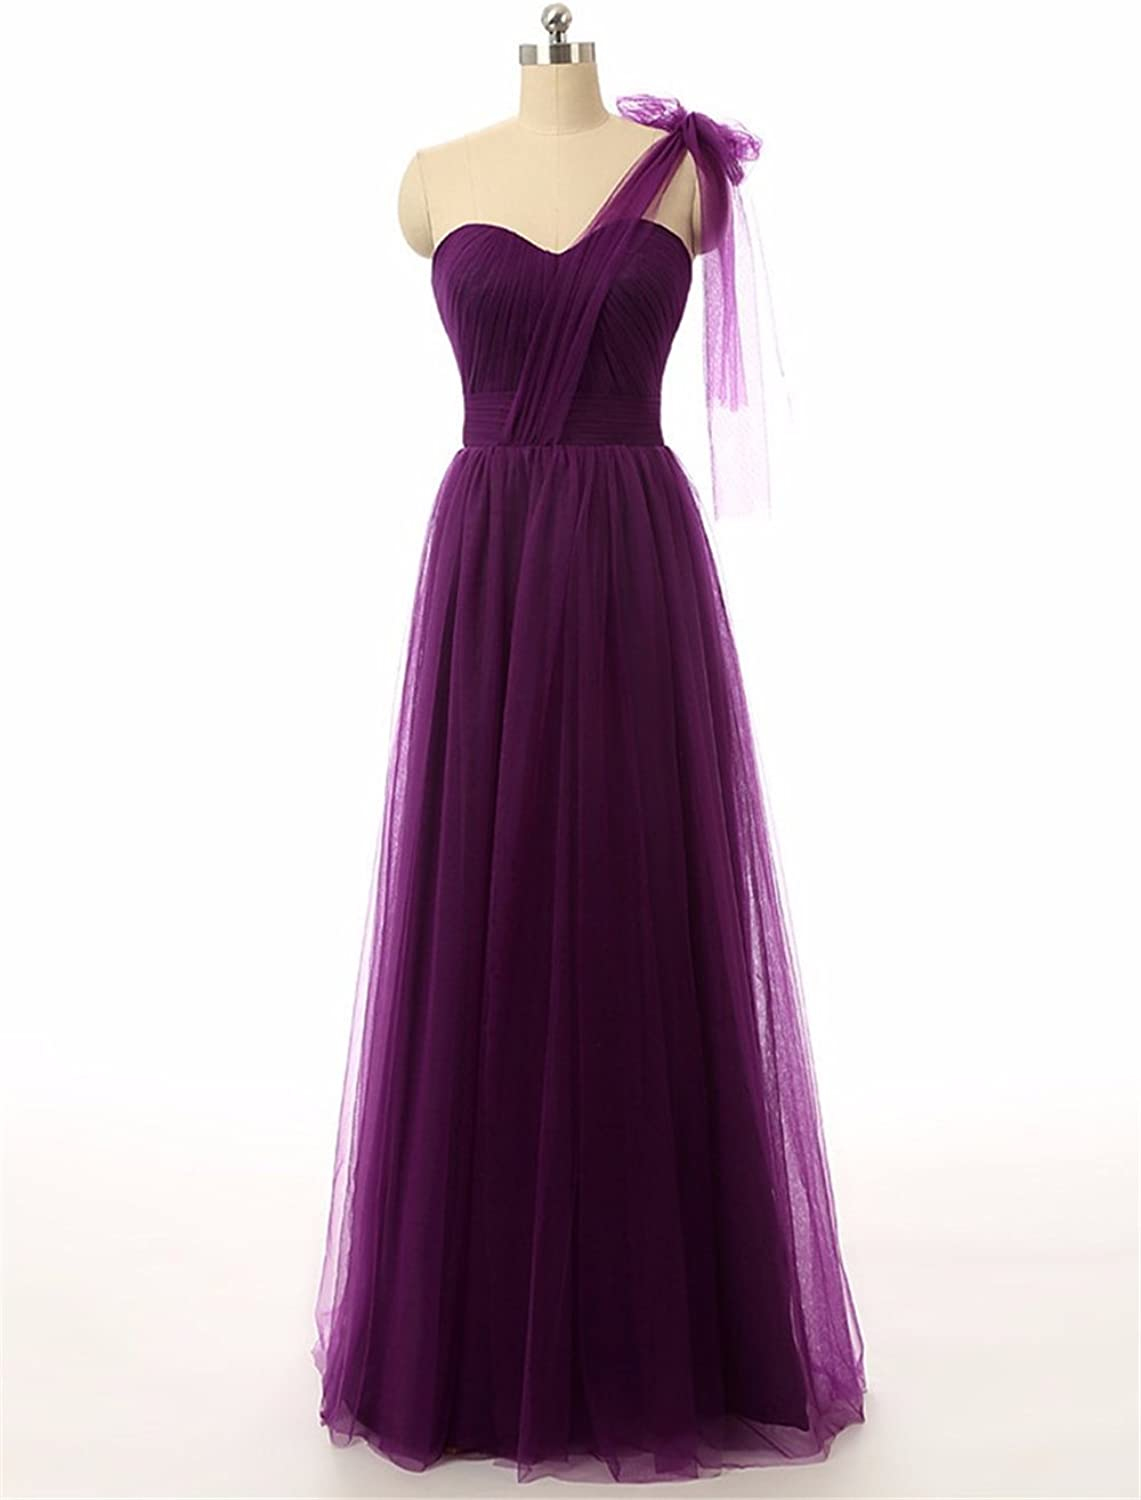 CharmingBridal Women's Tulle Formal Party Prom Long Bridesmaid Dress